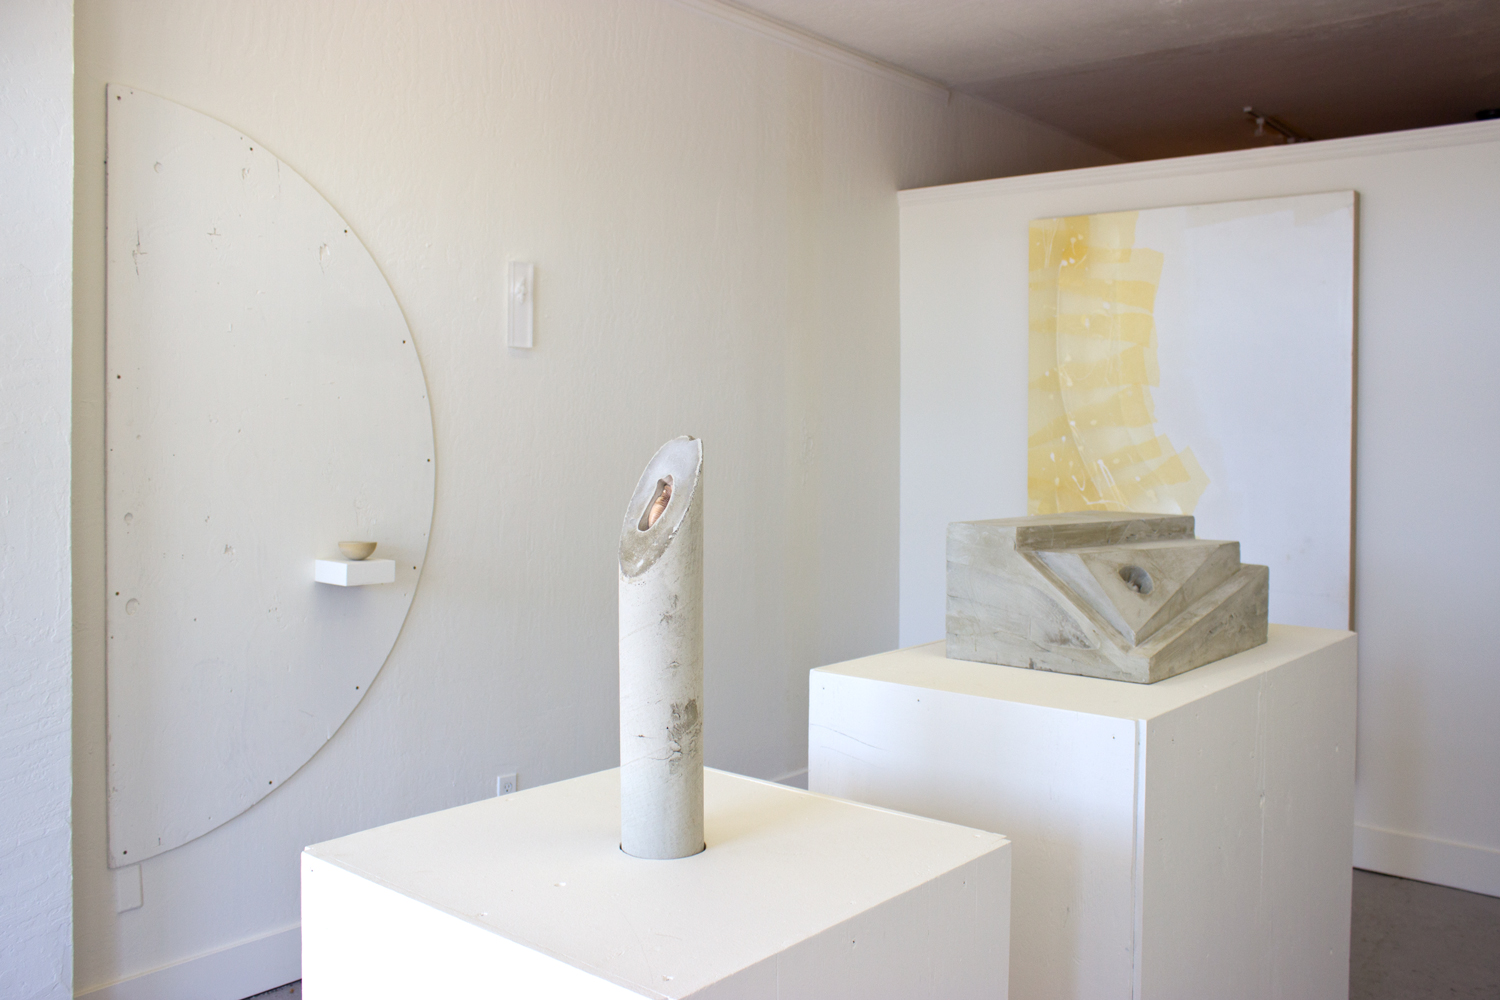 Custom Built-In   2015  Installation view (Untitled (concrete shell, cylinder) and Untitled (concrete shell, rectangle) shown in foreground)